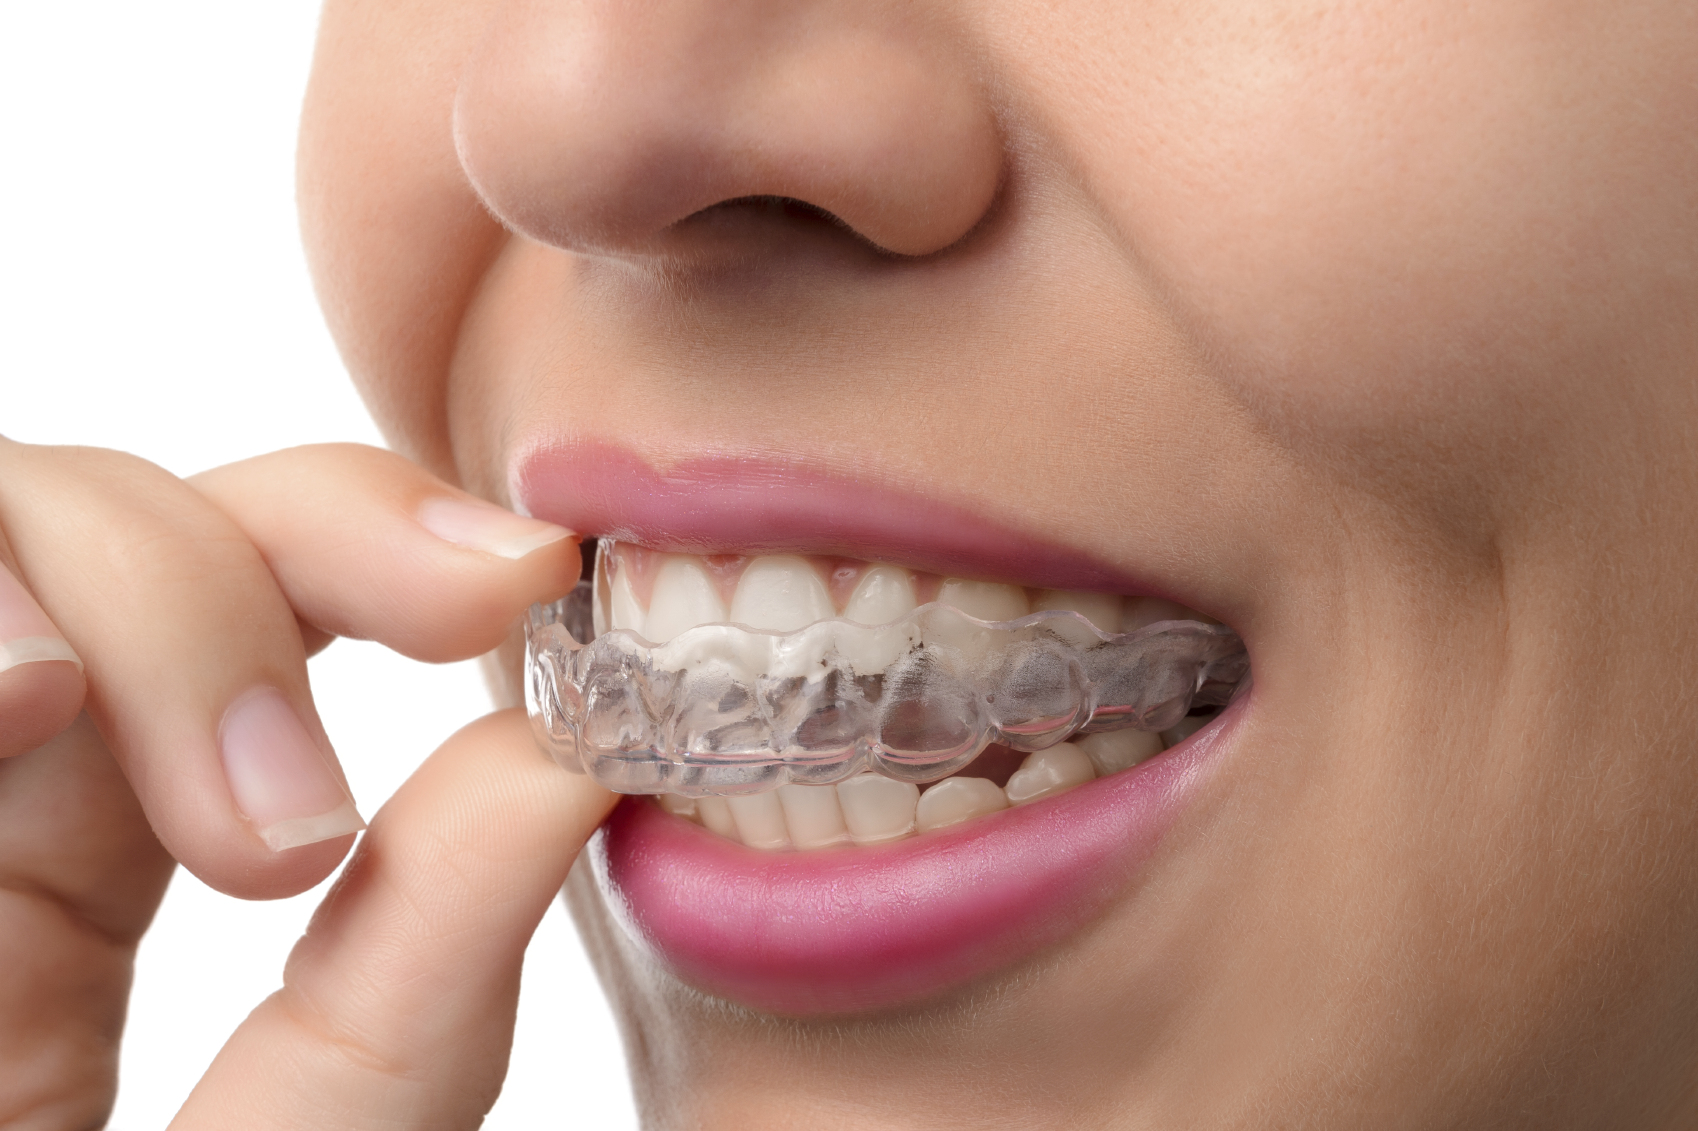 This is the image for the news article titled The Clear Pros of Invisalign Teen